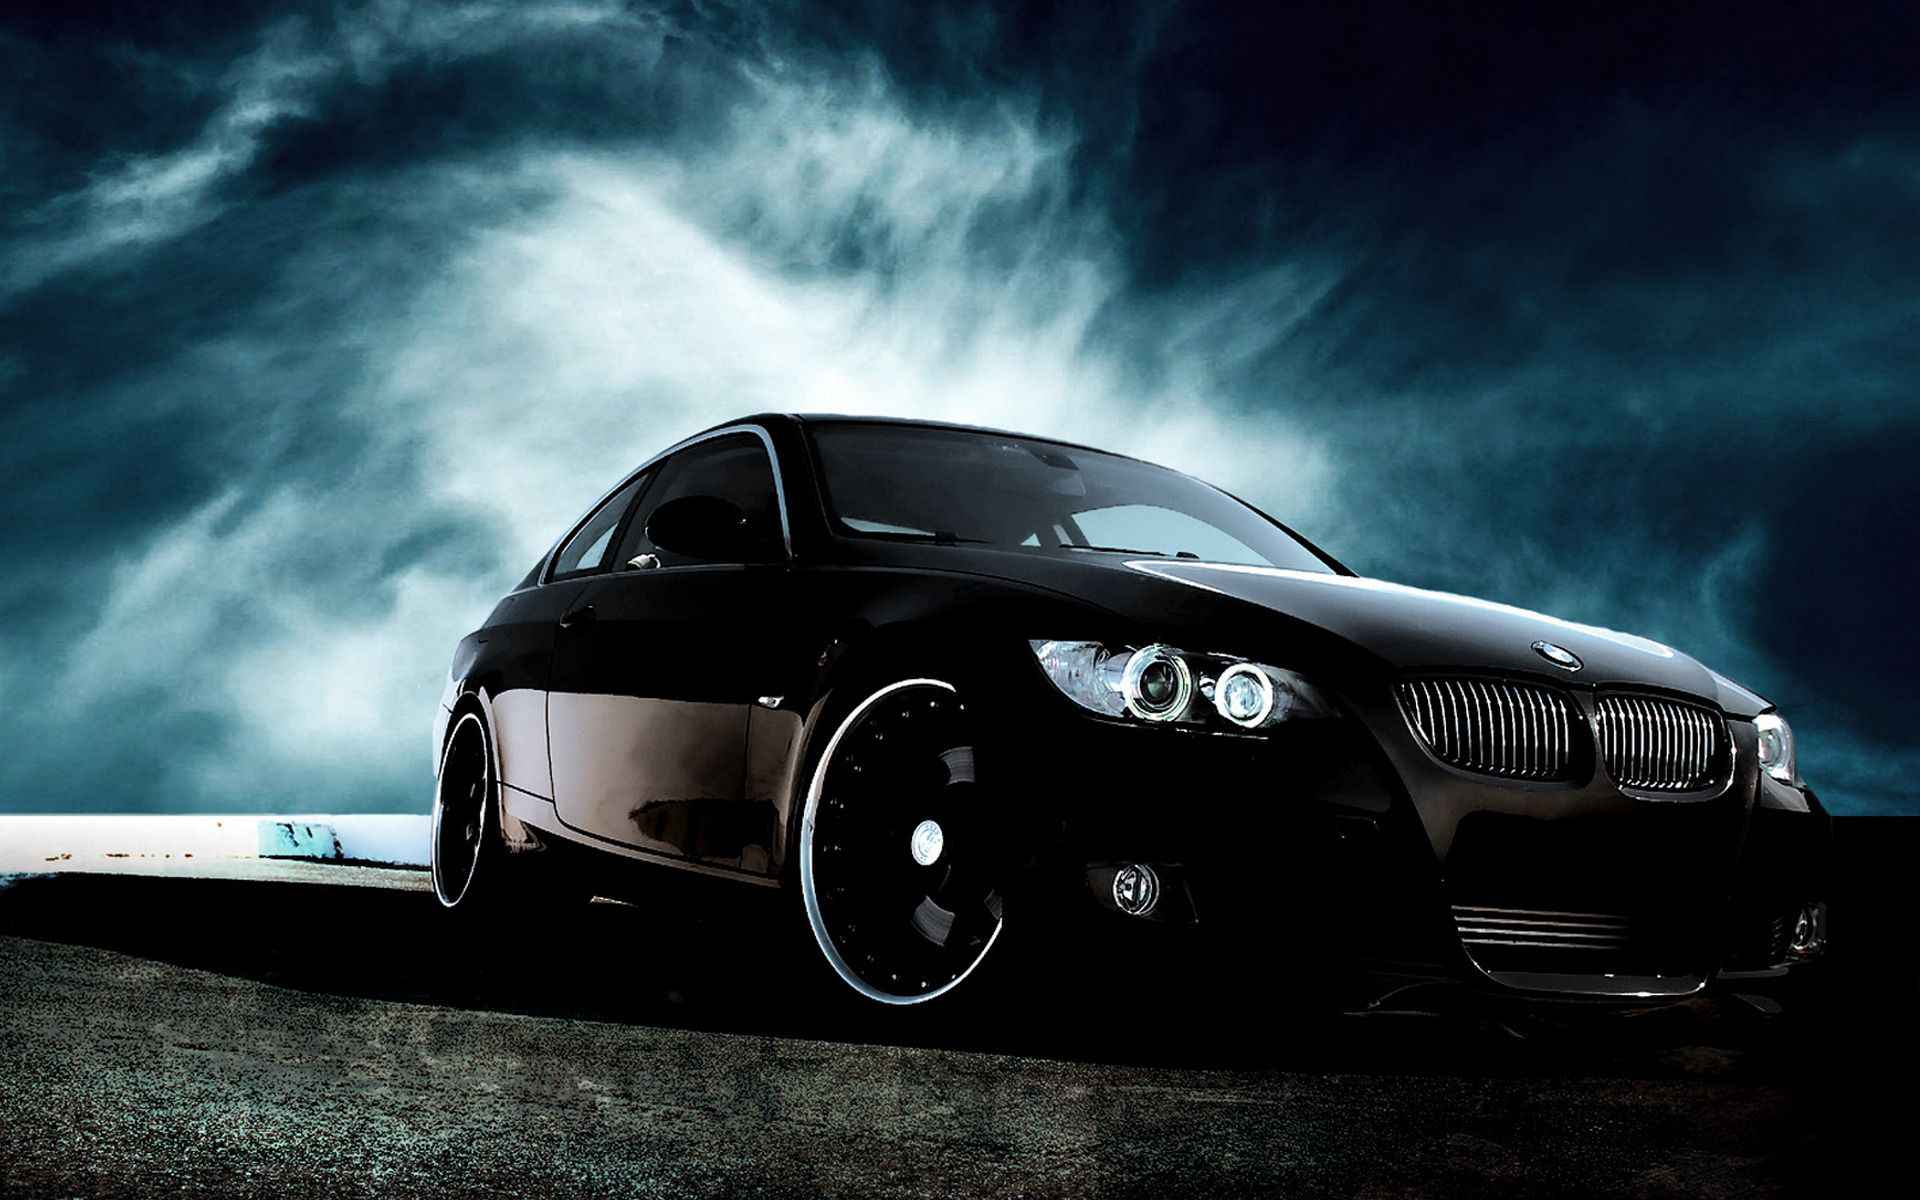 Simple Wallpaper High Resolution Bmw - 81c4e2d2726b9b5e3e0ec096decd321d  HD_231940.jpg